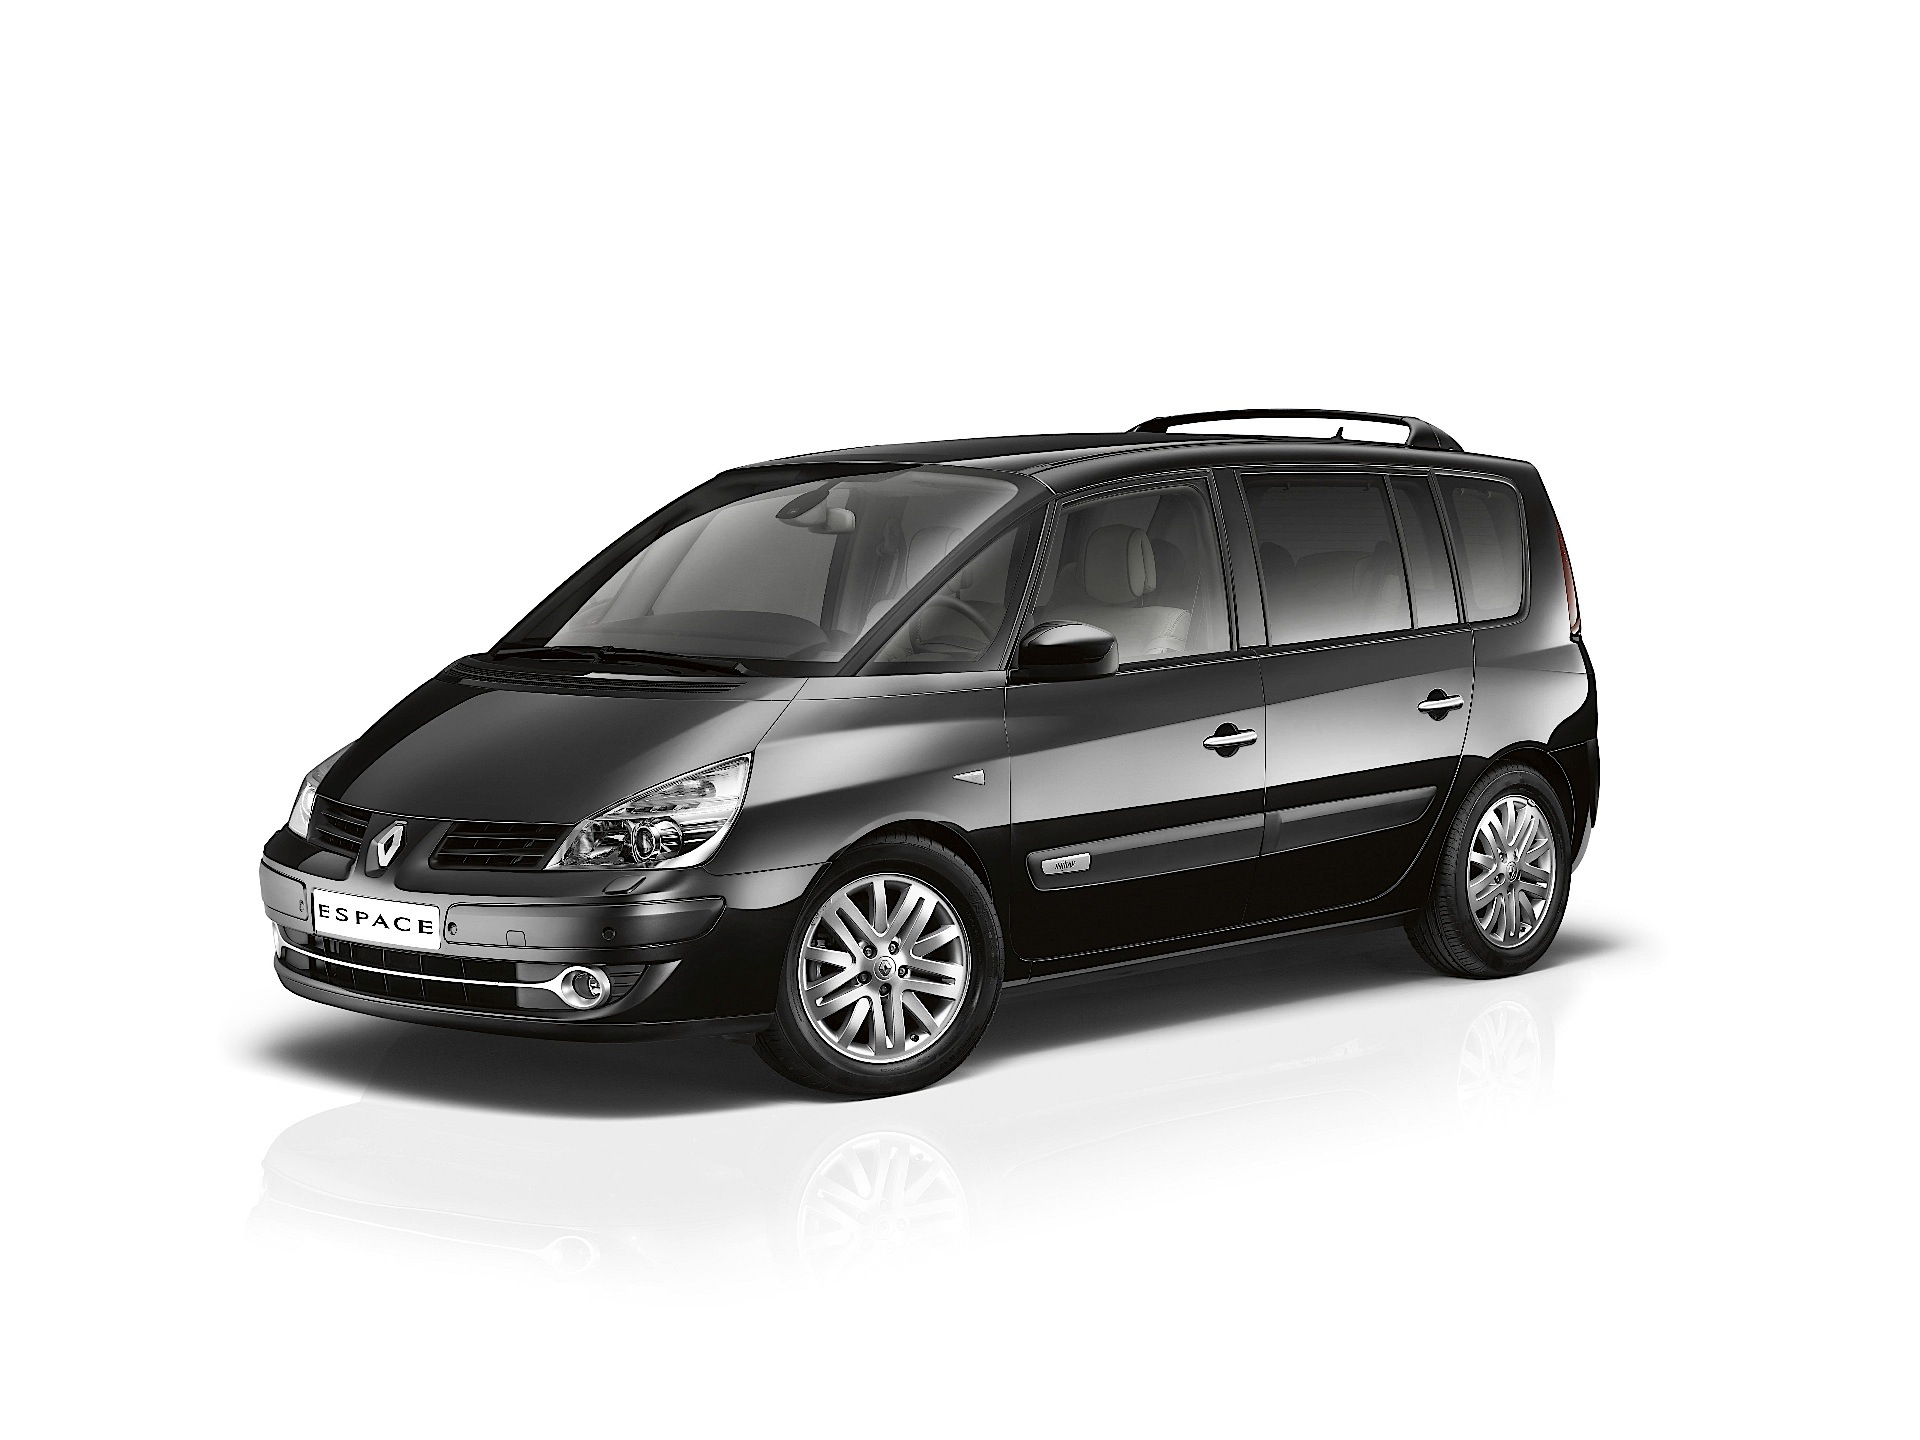 renault espace 2006 2007 2008 2009 2010 2011 2012. Black Bedroom Furniture Sets. Home Design Ideas